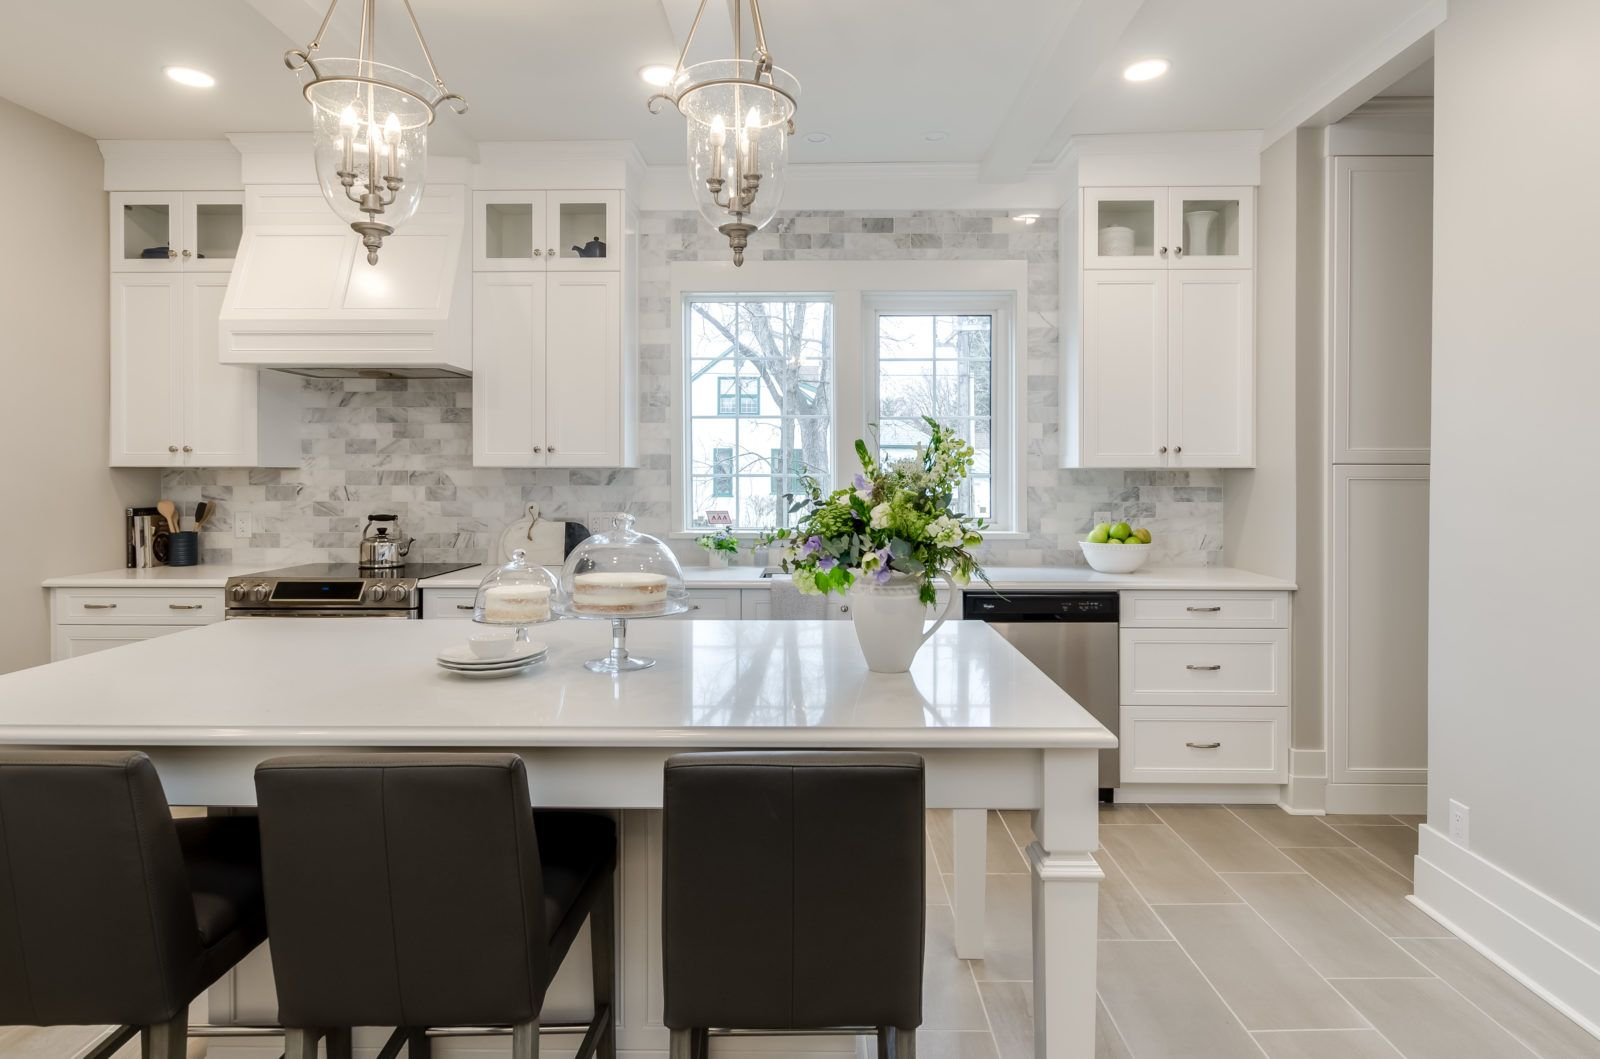 Oxford Interior Design Portfolio Winnipeg White Kitchen With Marble Backsplash Cheap Kitchen Cabinets Kitchen Renovation Trends Kitchen Cabinets For Sale